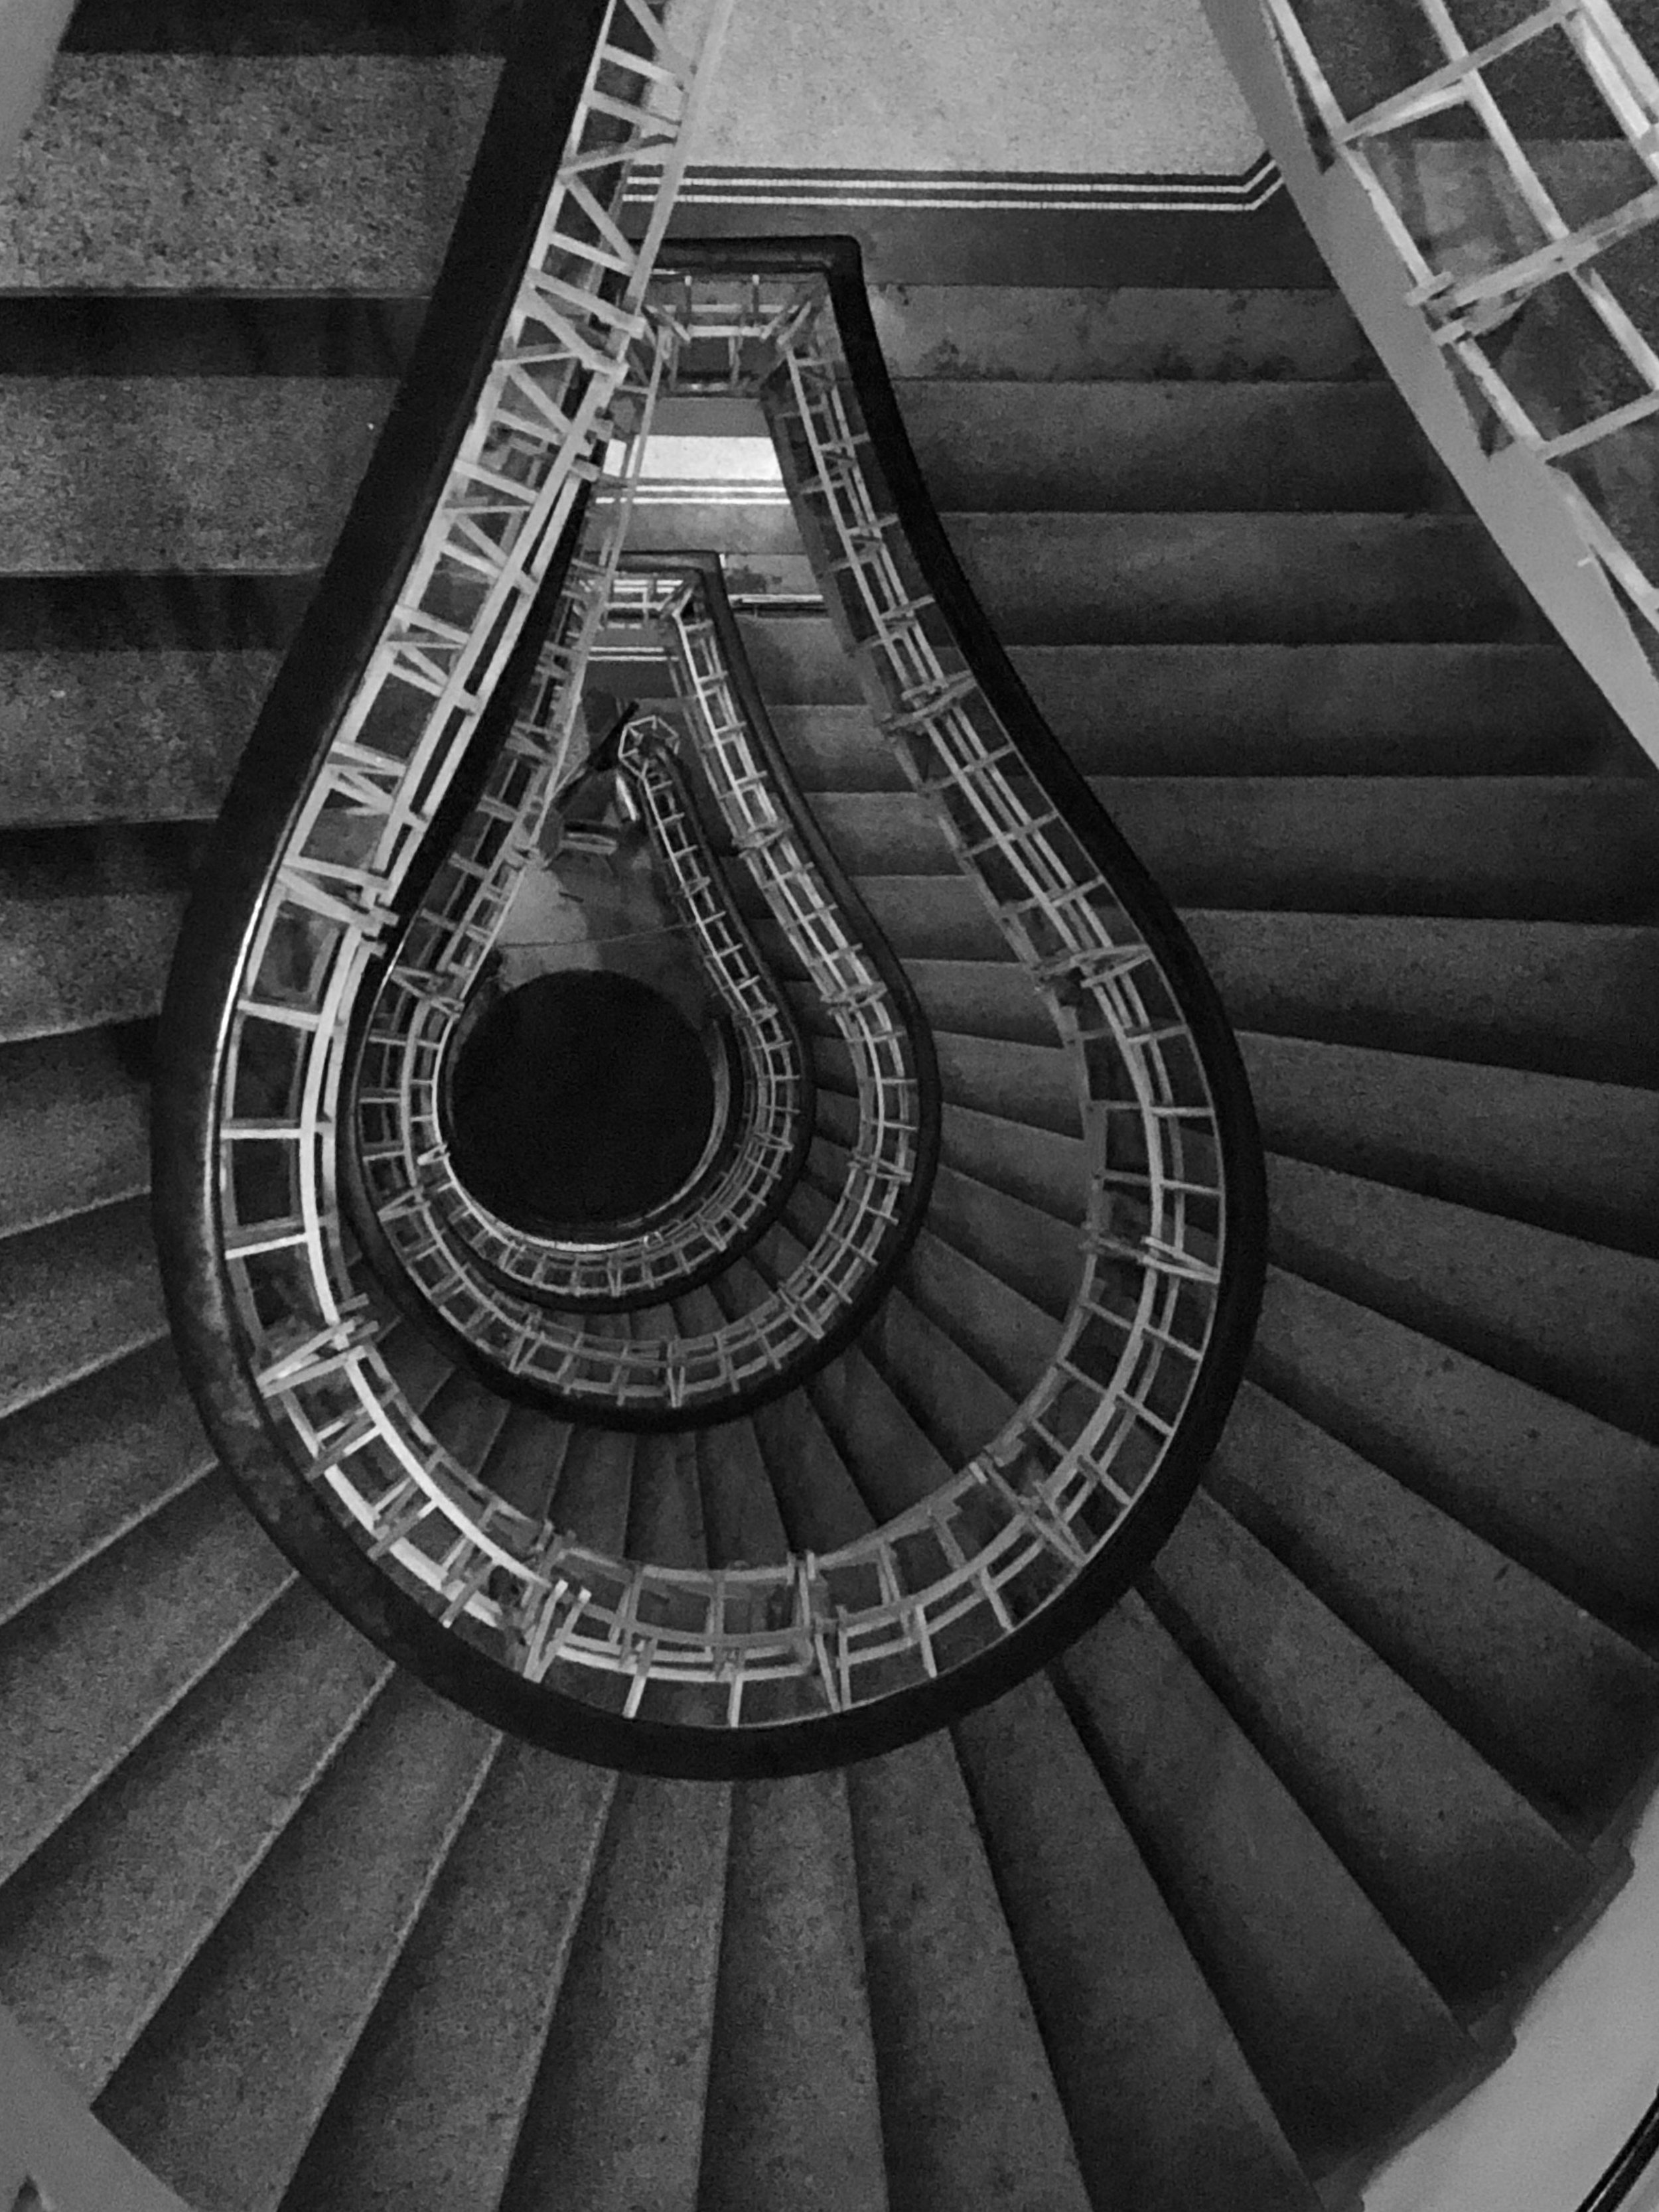 The stairwell at the House of the Black Madonna in Prague, Czech Republic.